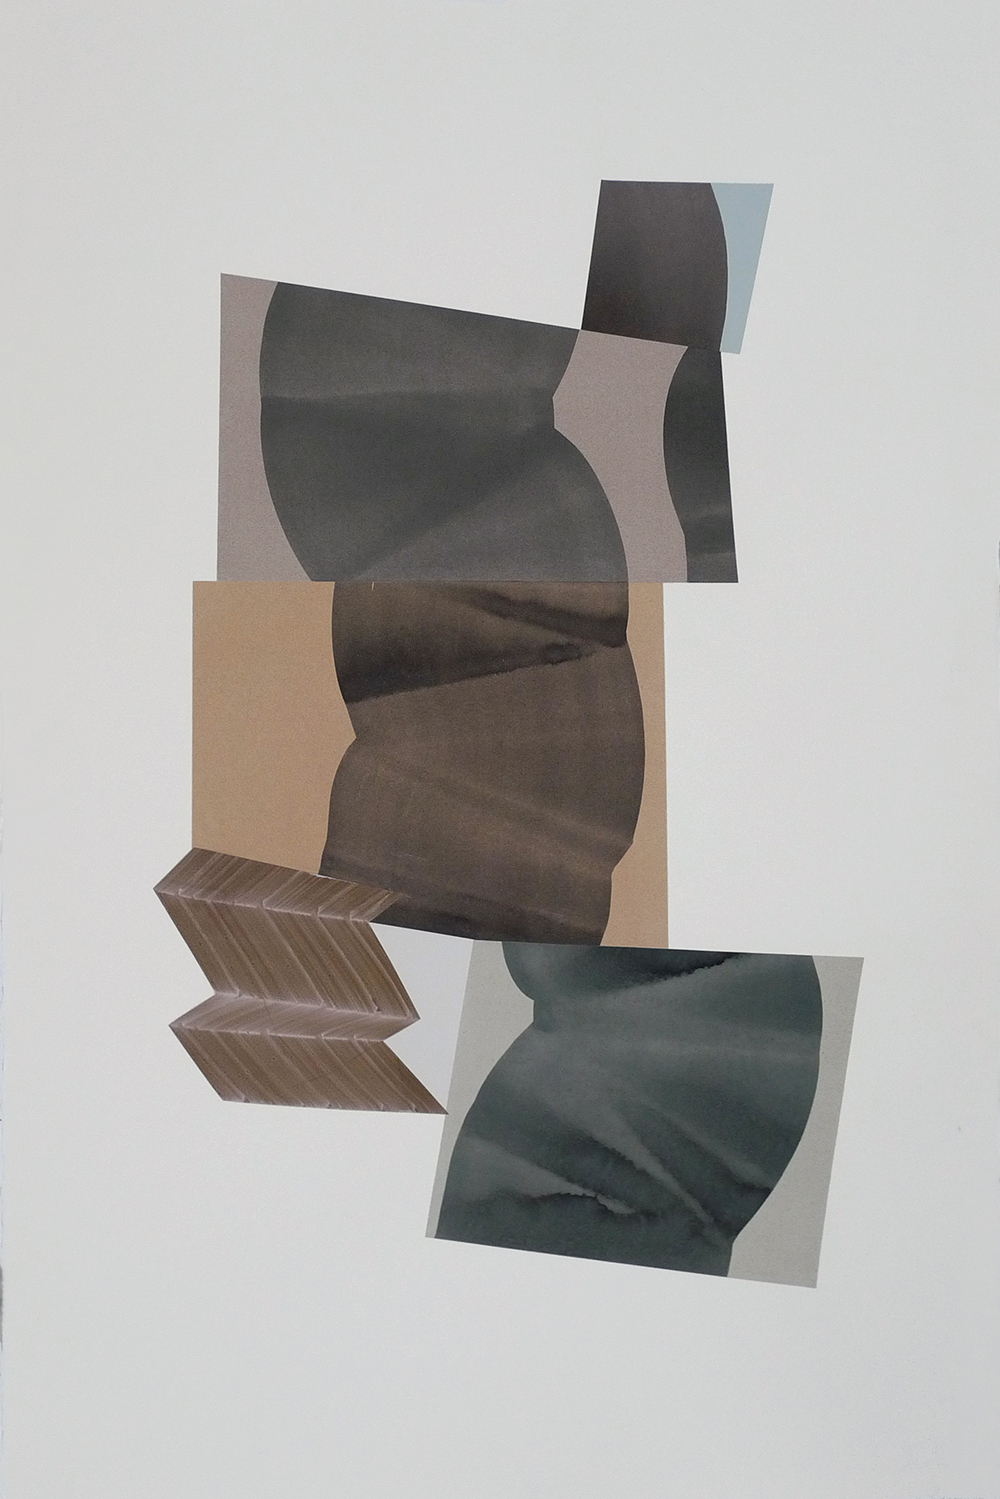 """Simone Rochon, Ombres souples no. 3 , 2017, collage, acrylic ink on Waterford paper,40"""" x 26"""" (102 x 66 cm)."""